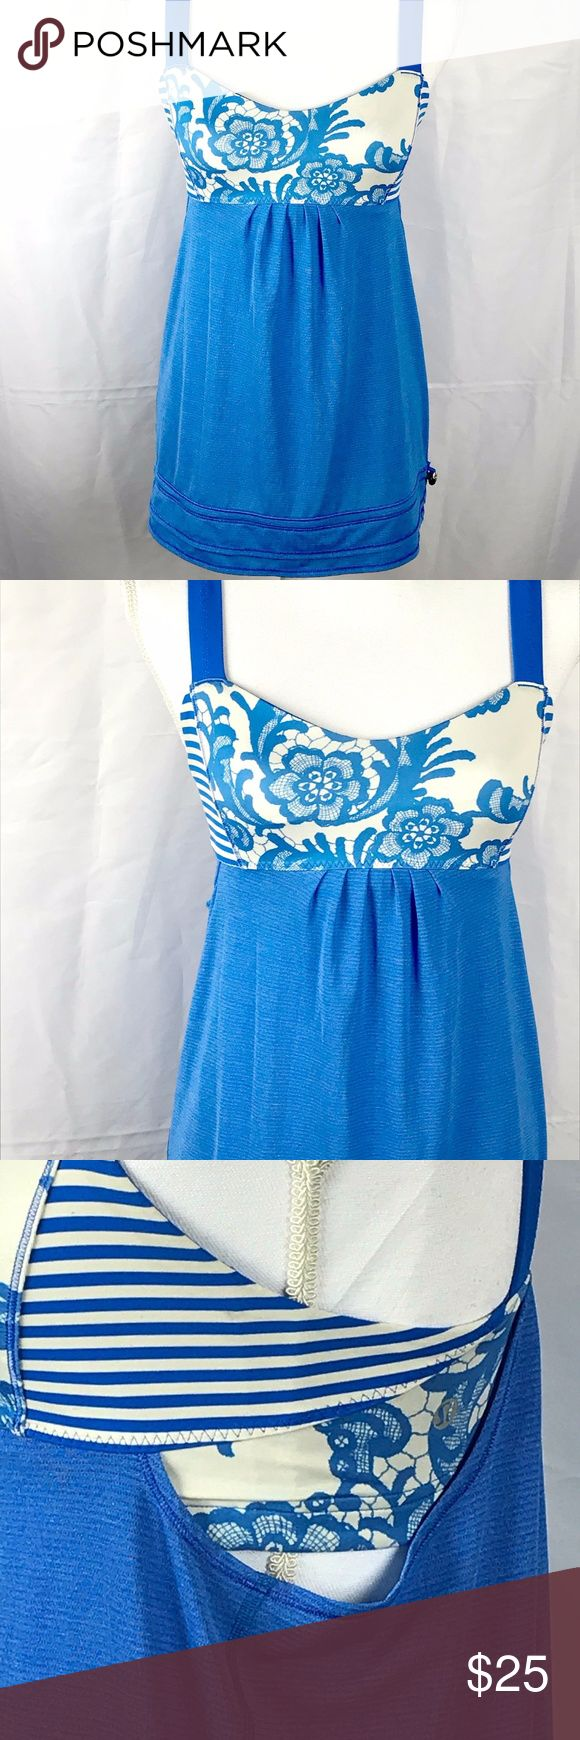 "Lululemon Size 6 Floral Stripe Brand: Lululemon  Type of Clothing:  Shirt  Condition: Pre-Owned  Color: Blue and White  Size:  6  Measurements (Approximate. Taken Flat)  Across Chest: 12""  Length: 20""  Additional Details: Pre-Owned Lululemon Blue and White Floral Print Size 6 Sports Bra Yoga Shirt in great condition lululemon athletica Tops Tank Tops"